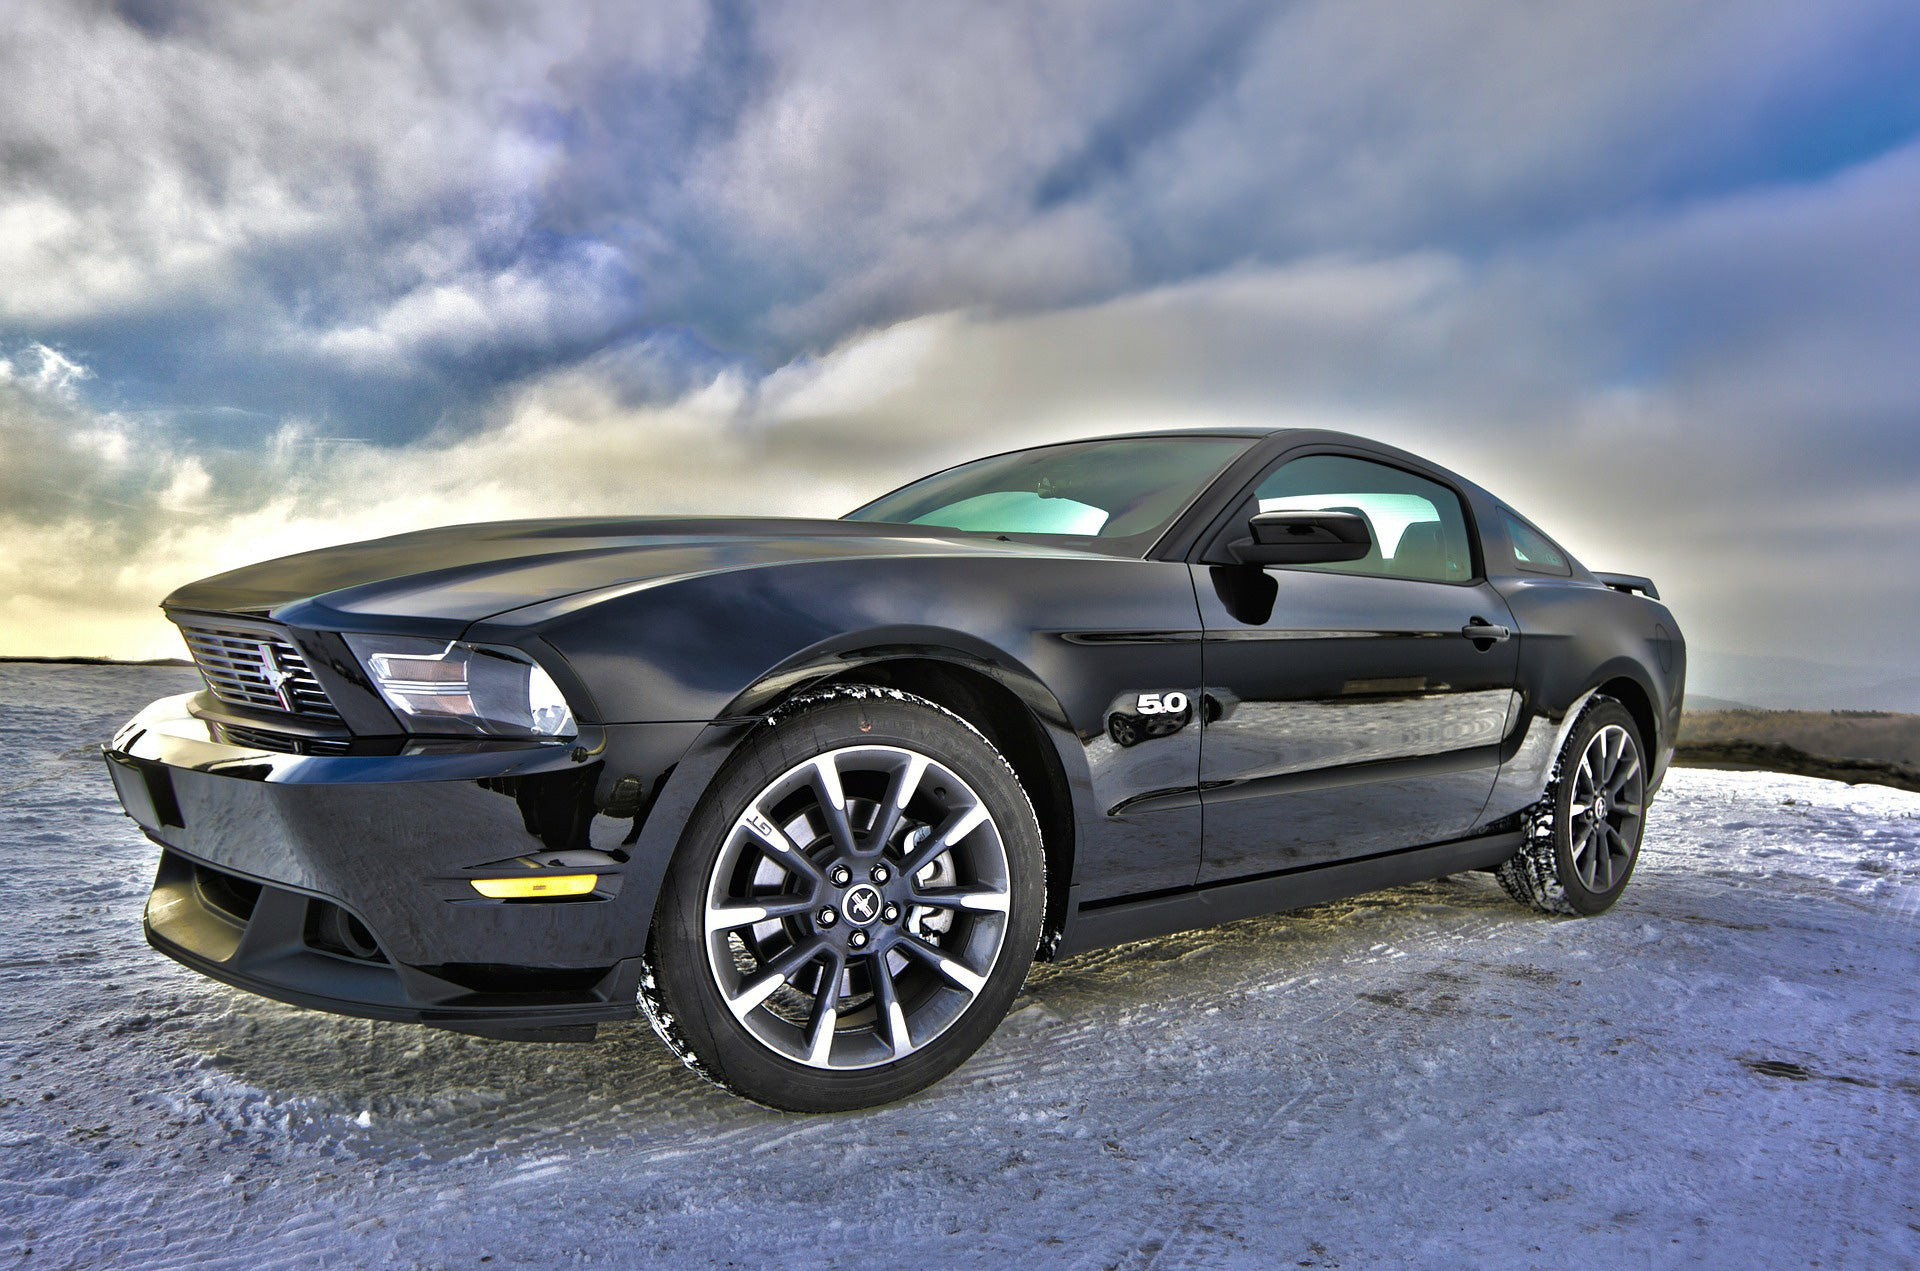 Car fabric panel mustang black with a stormy background 520 beautiful quilt